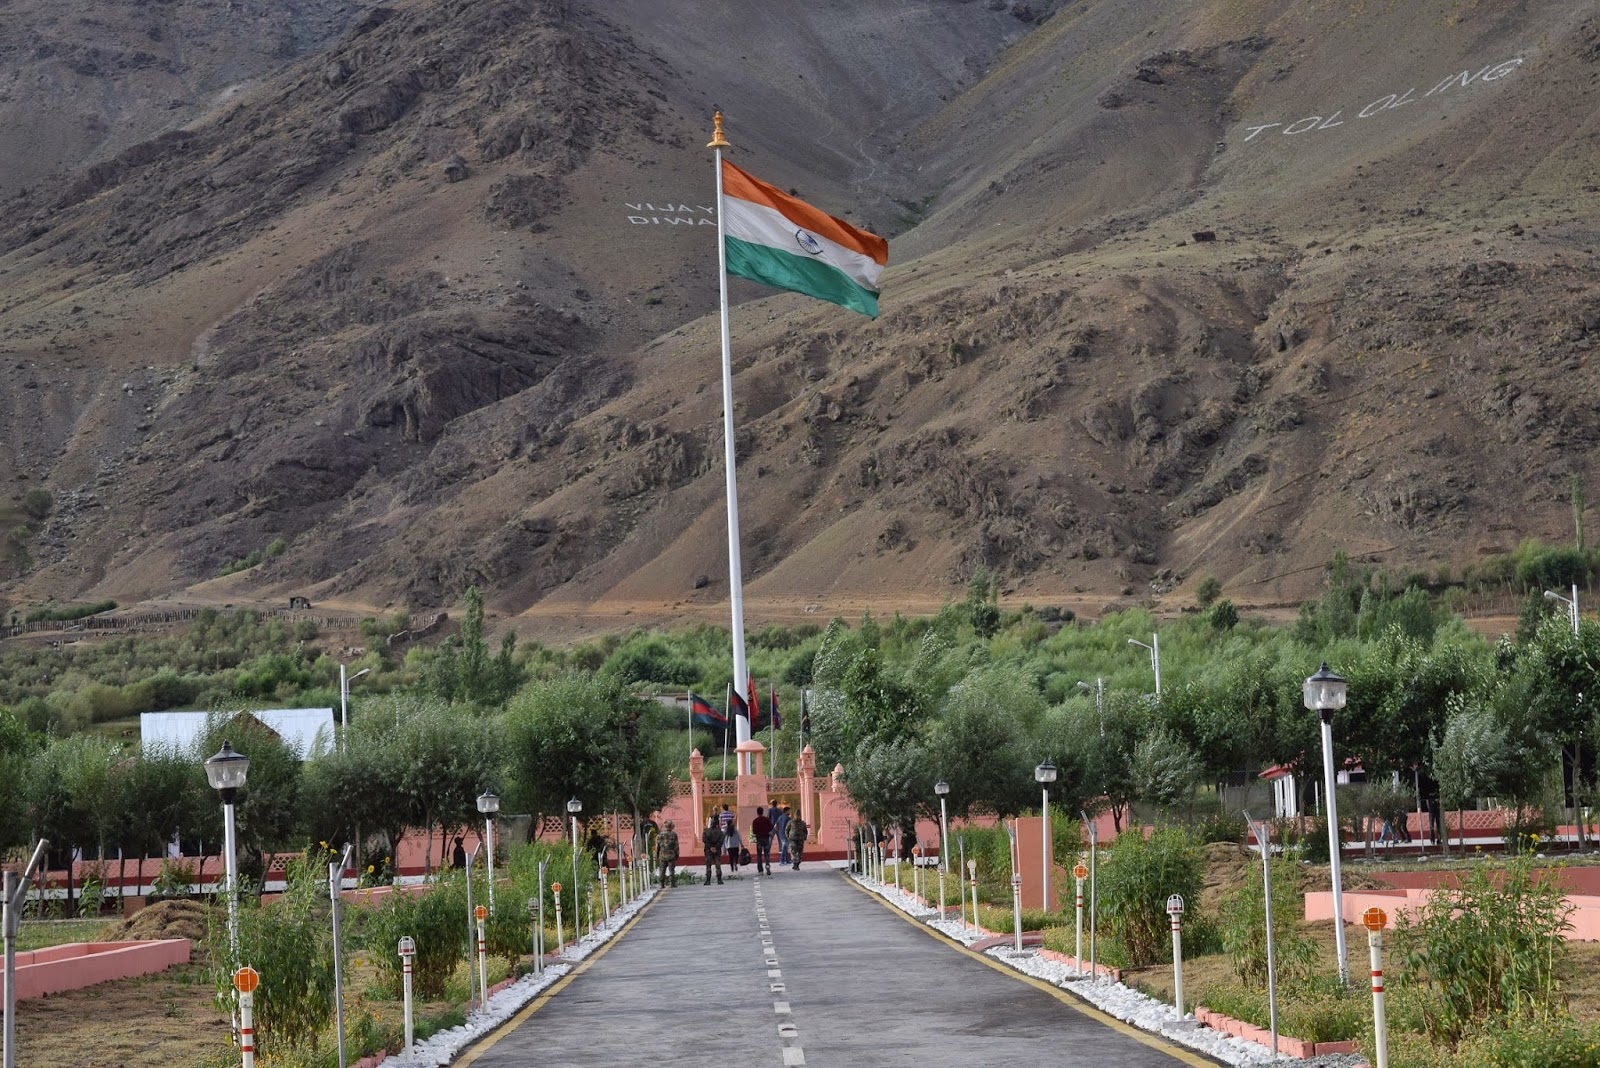 Operation Vijay Memorial in Kargil